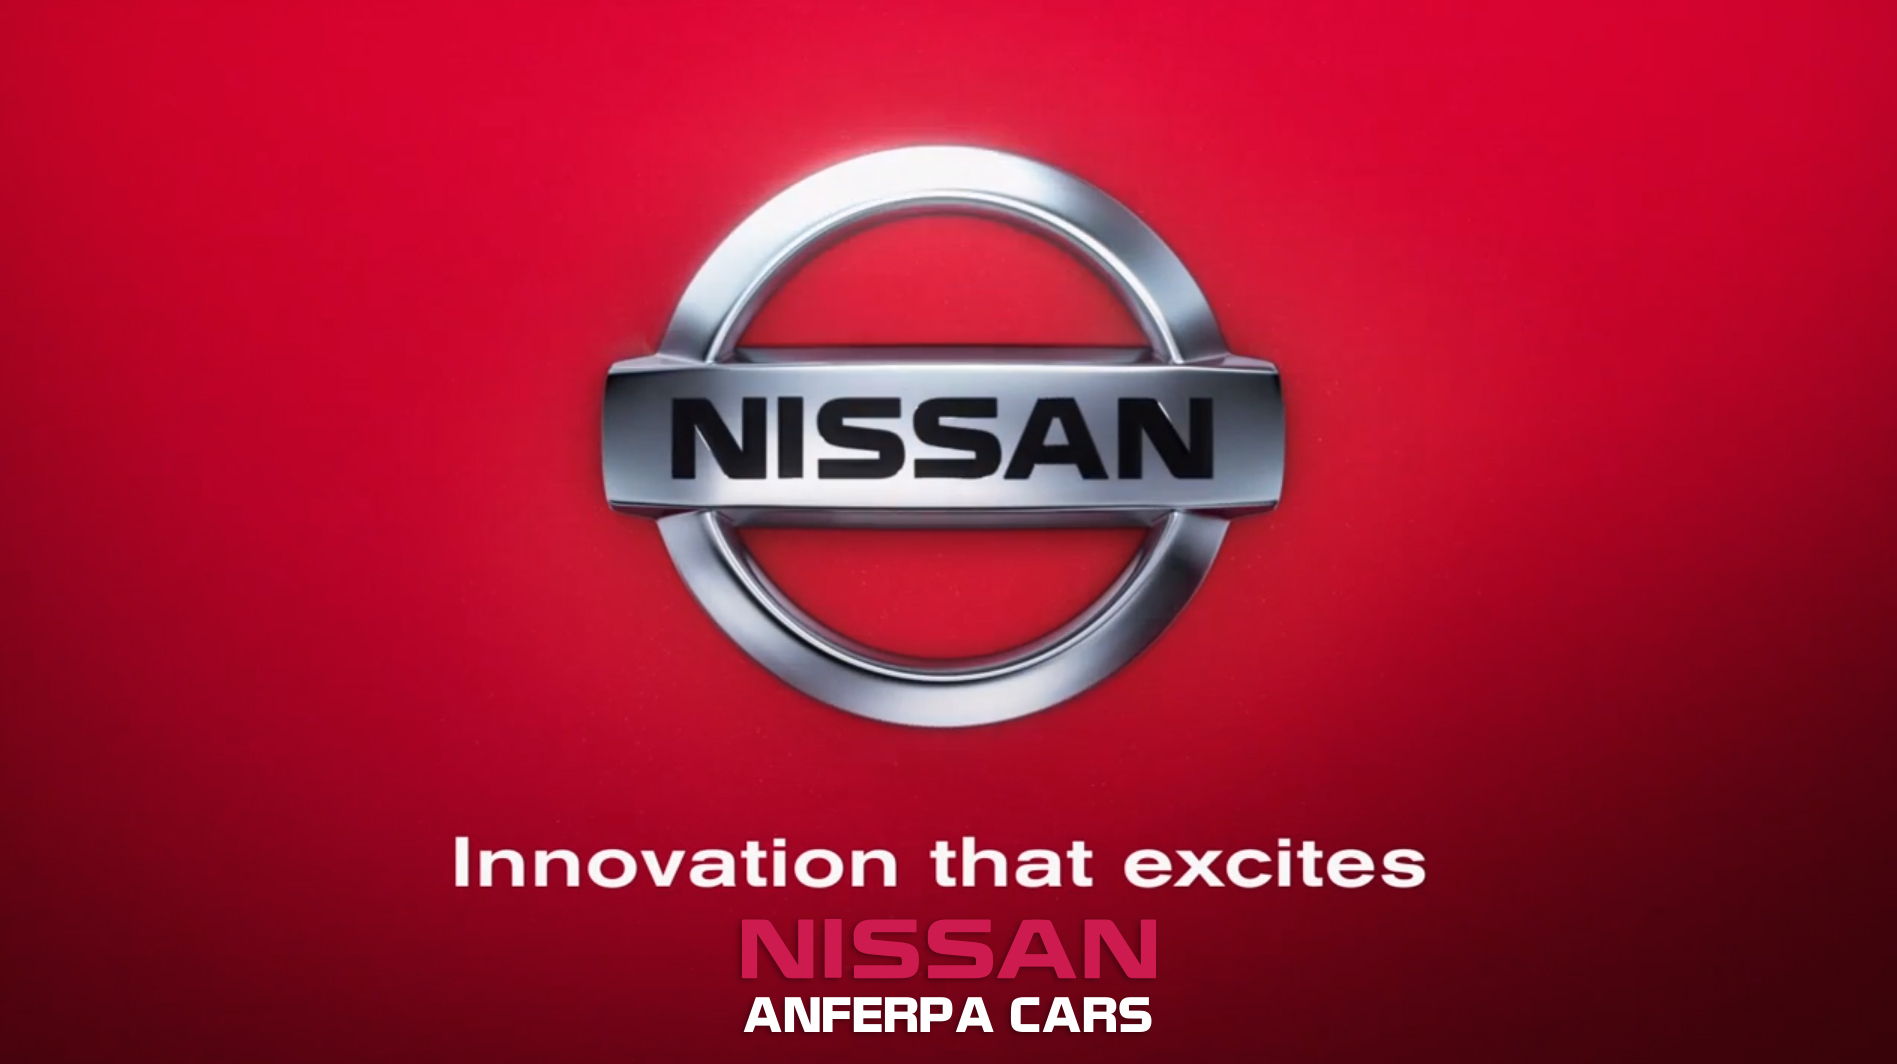 NISSAN Anferpa Cars